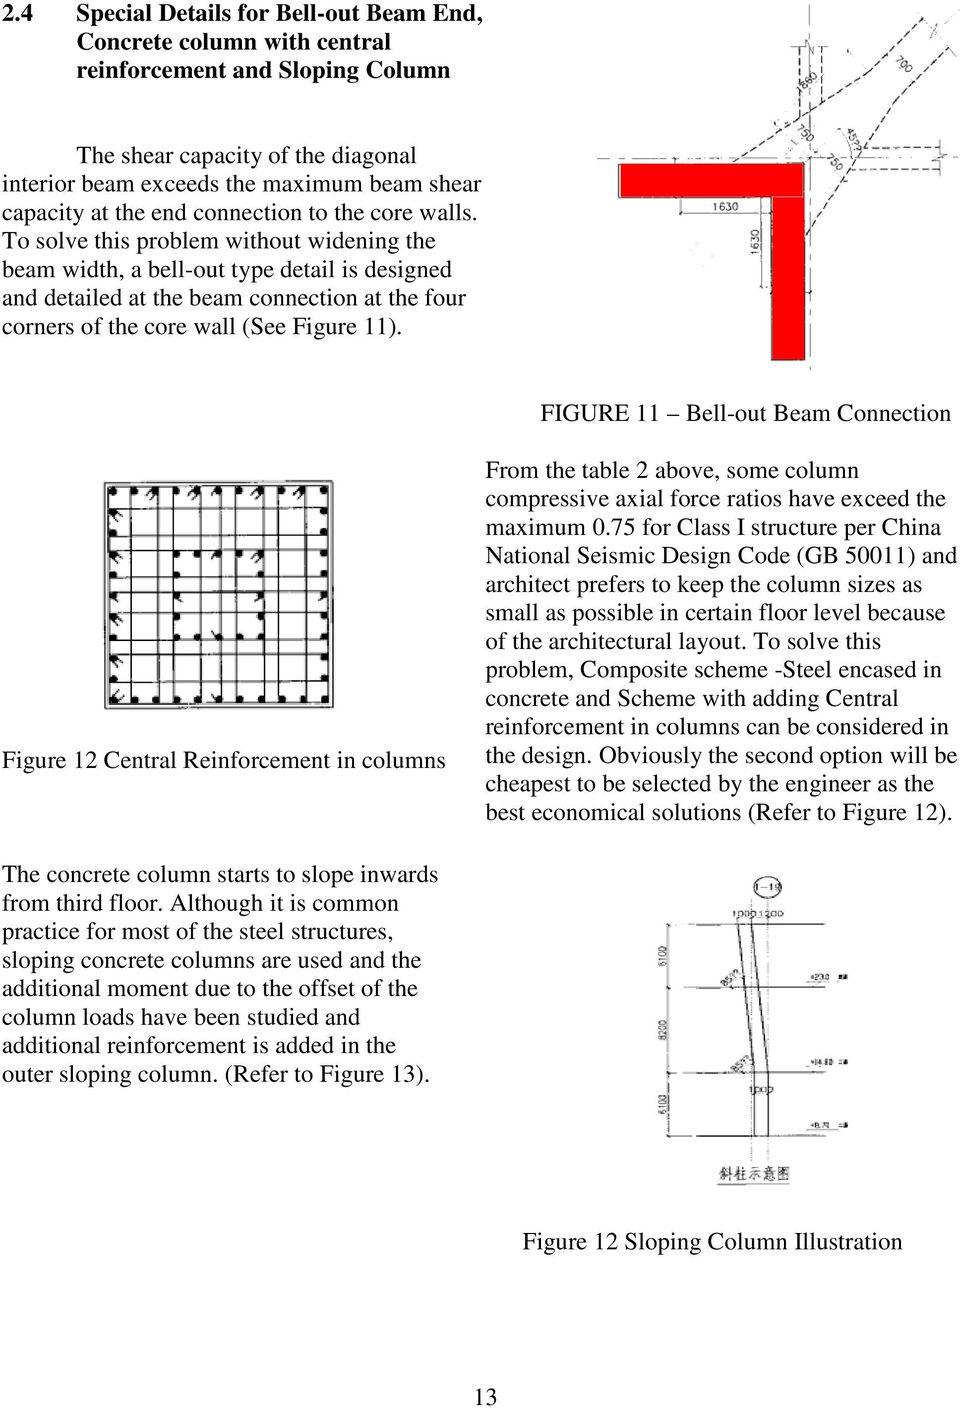 Analysis and Design of a 47-story Reinforced Concrete